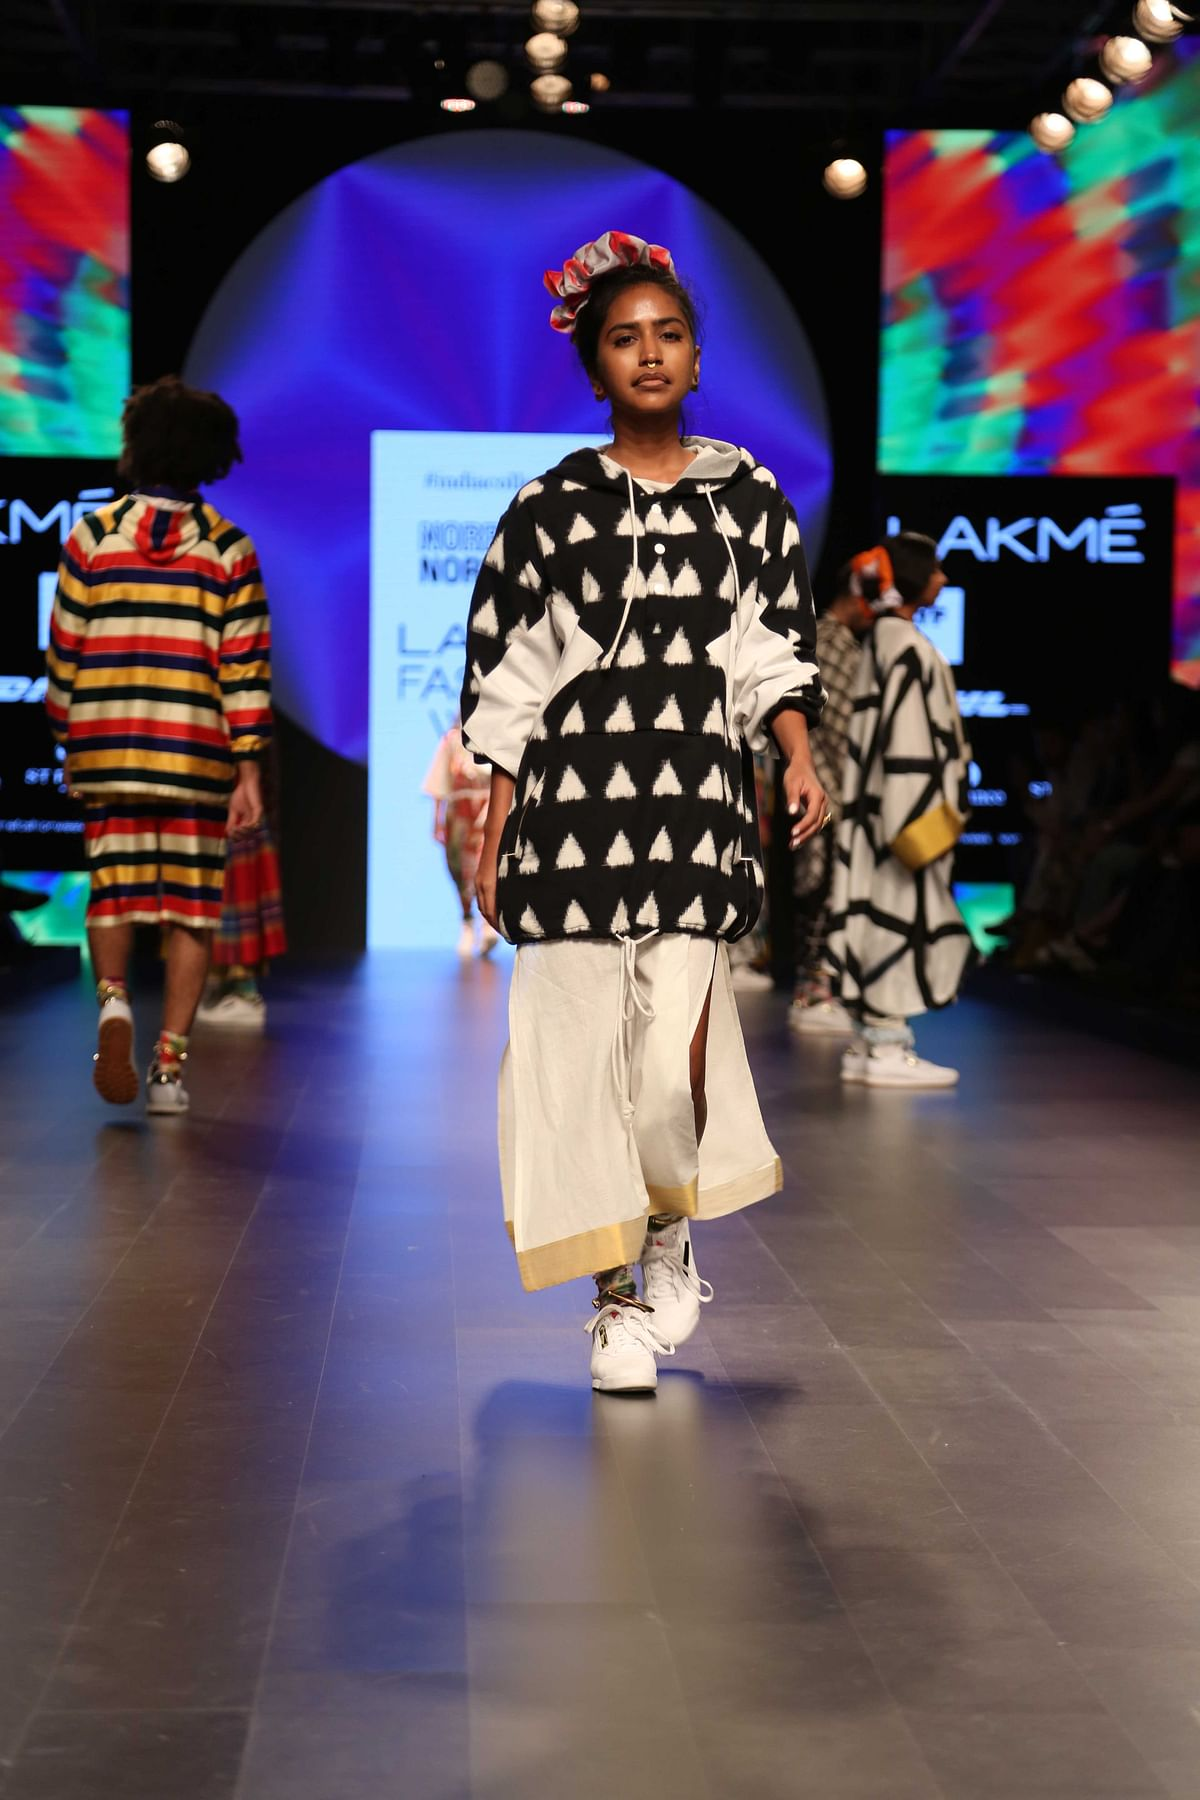 NorBlack NorWhite was quite an eye-catching collection (Photo: Yogen Shah)